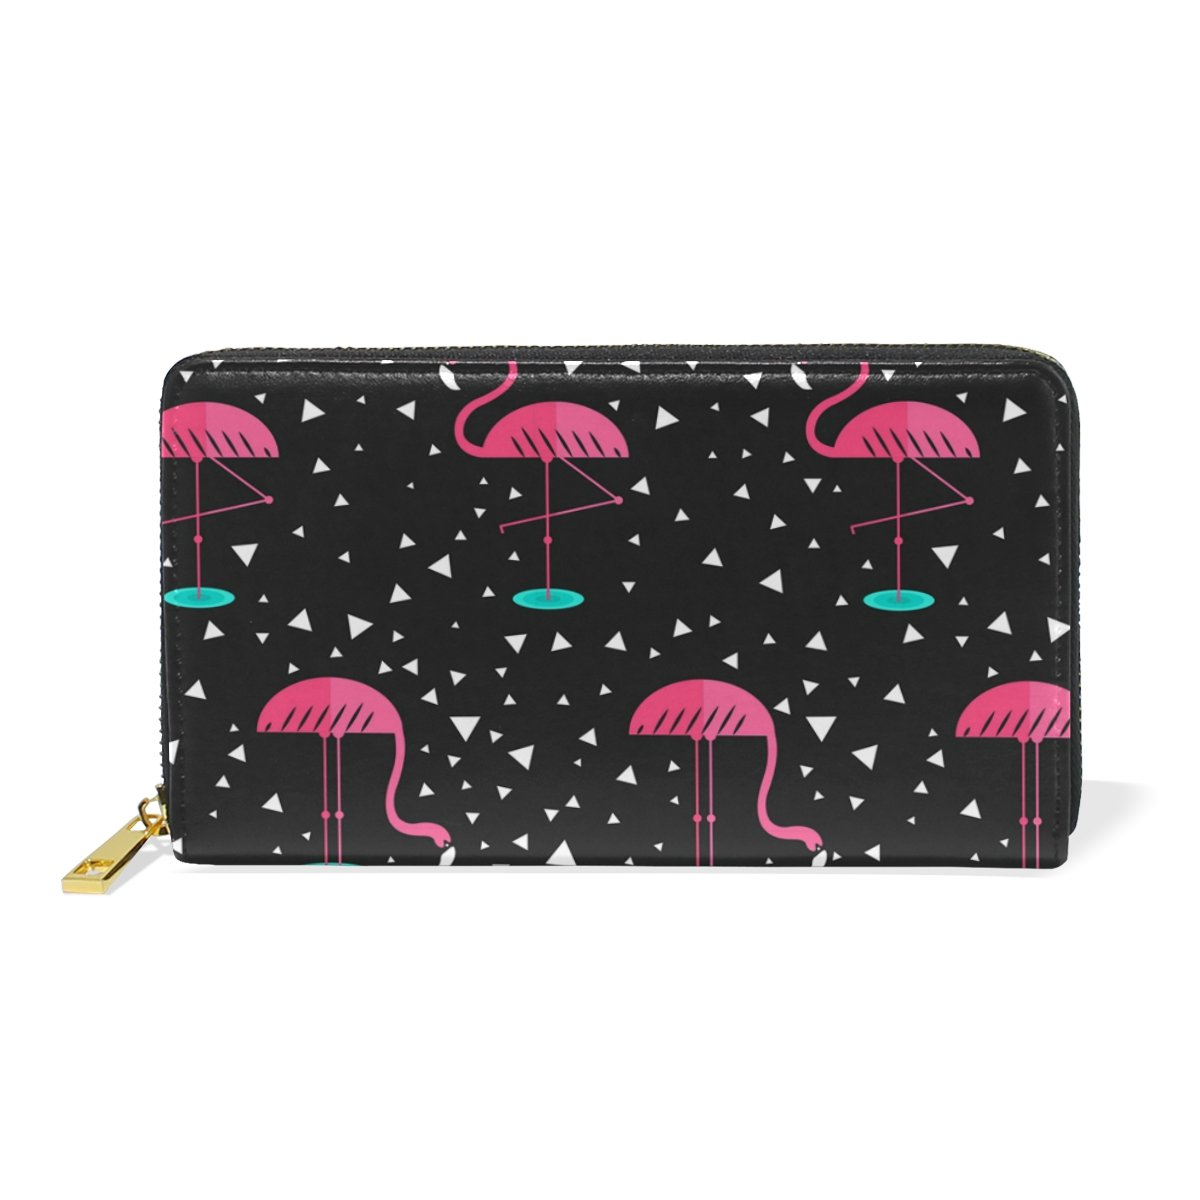 LAVOVO Flamingo Pattern Womens Clutch Purses Organizer And Handbags Zip Around Wallet